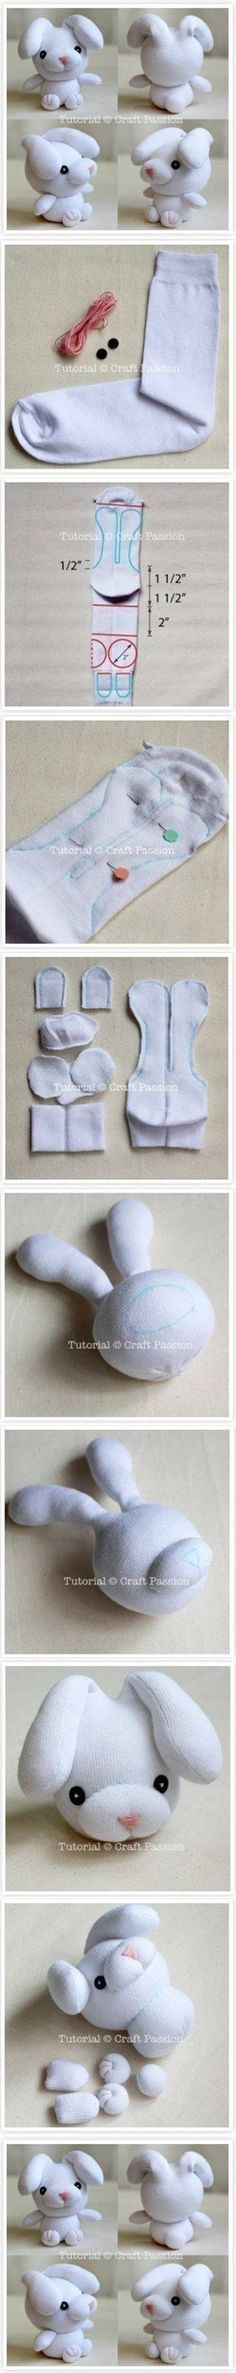 DIY Sew Sock Bunny DIY Projects / UsefulDIY.com